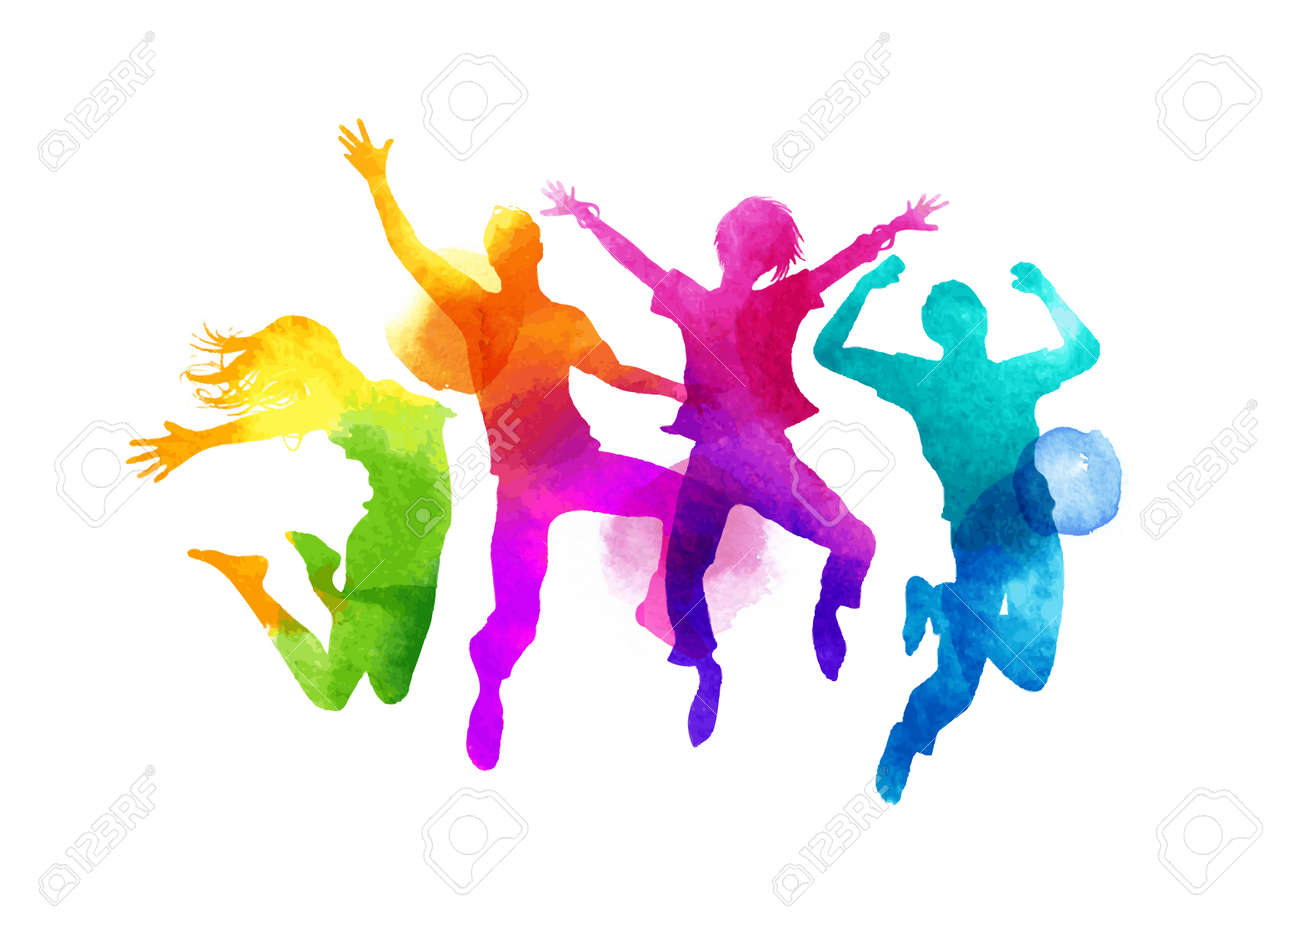 A group of friends jumping expressing happiness. Watercolour illustration. - 60773943